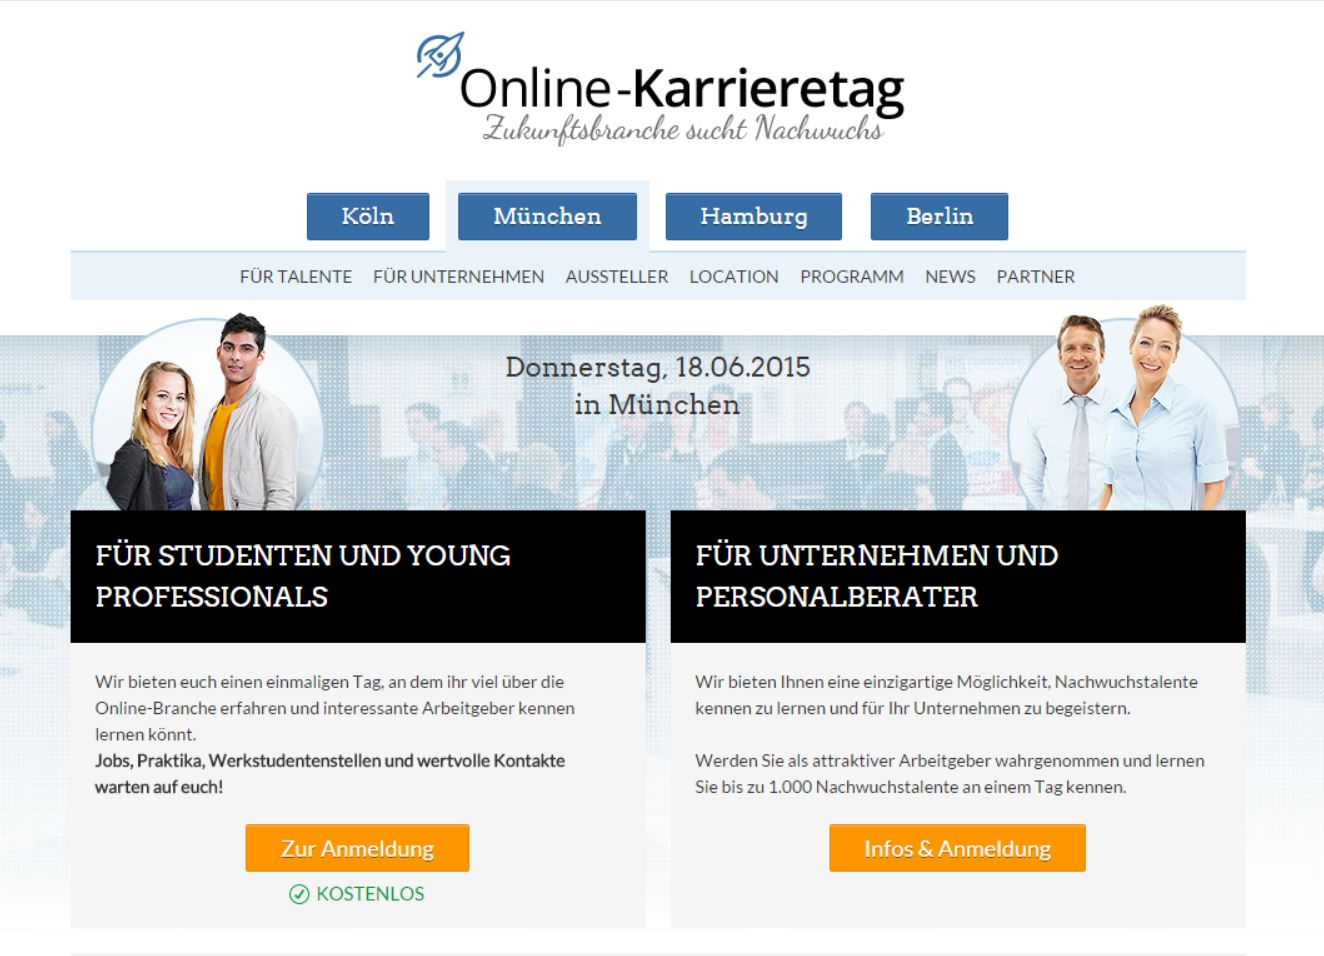 Online-Karrieretag: One Advertising AG ist dabei